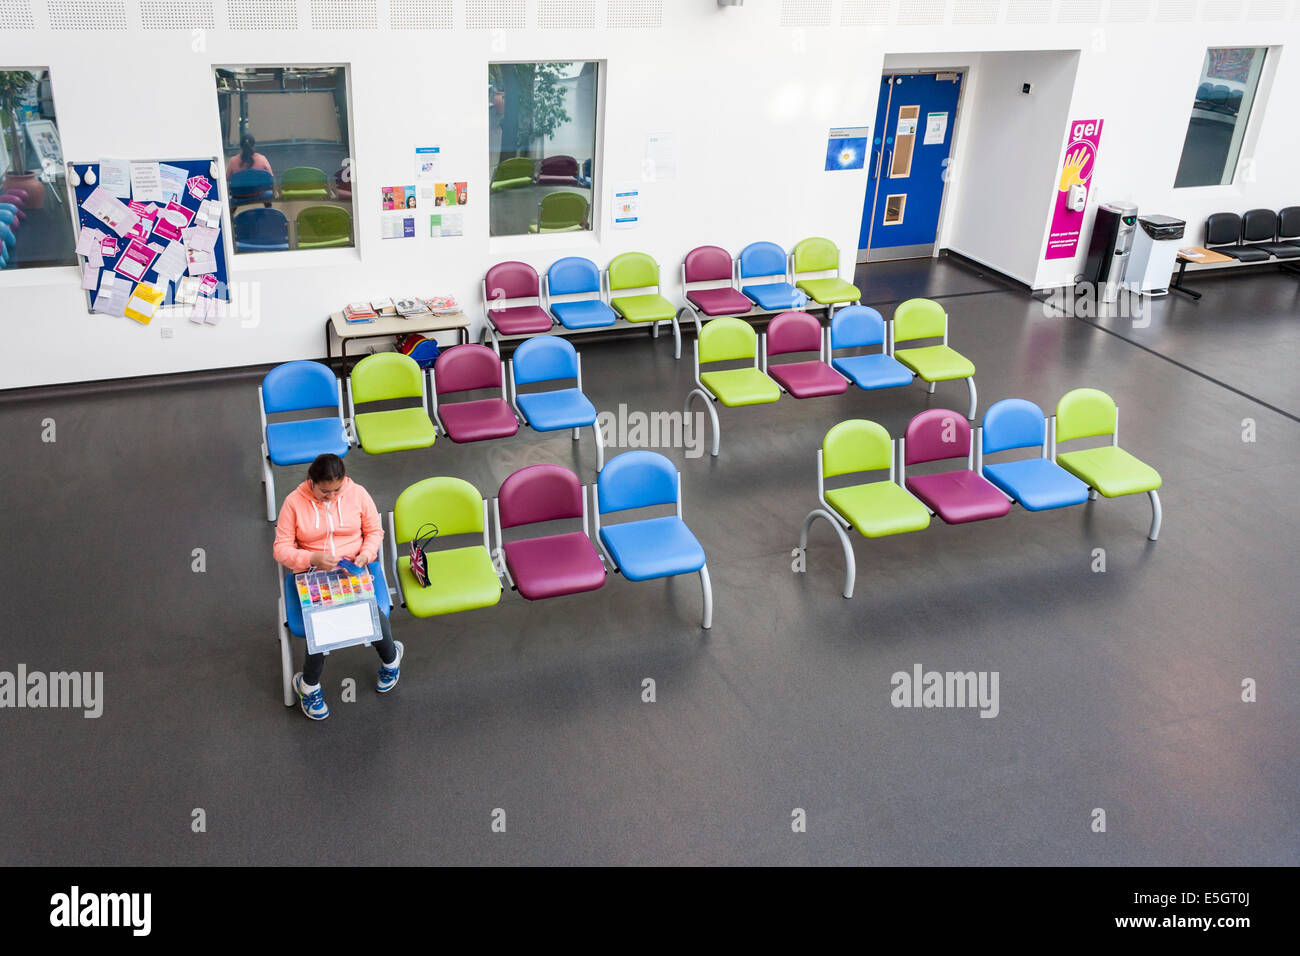 Child patient in waiting area. NHS Urgent Care Centre, Bracknell, Berkshire, England, GB, UK. - Stock Image